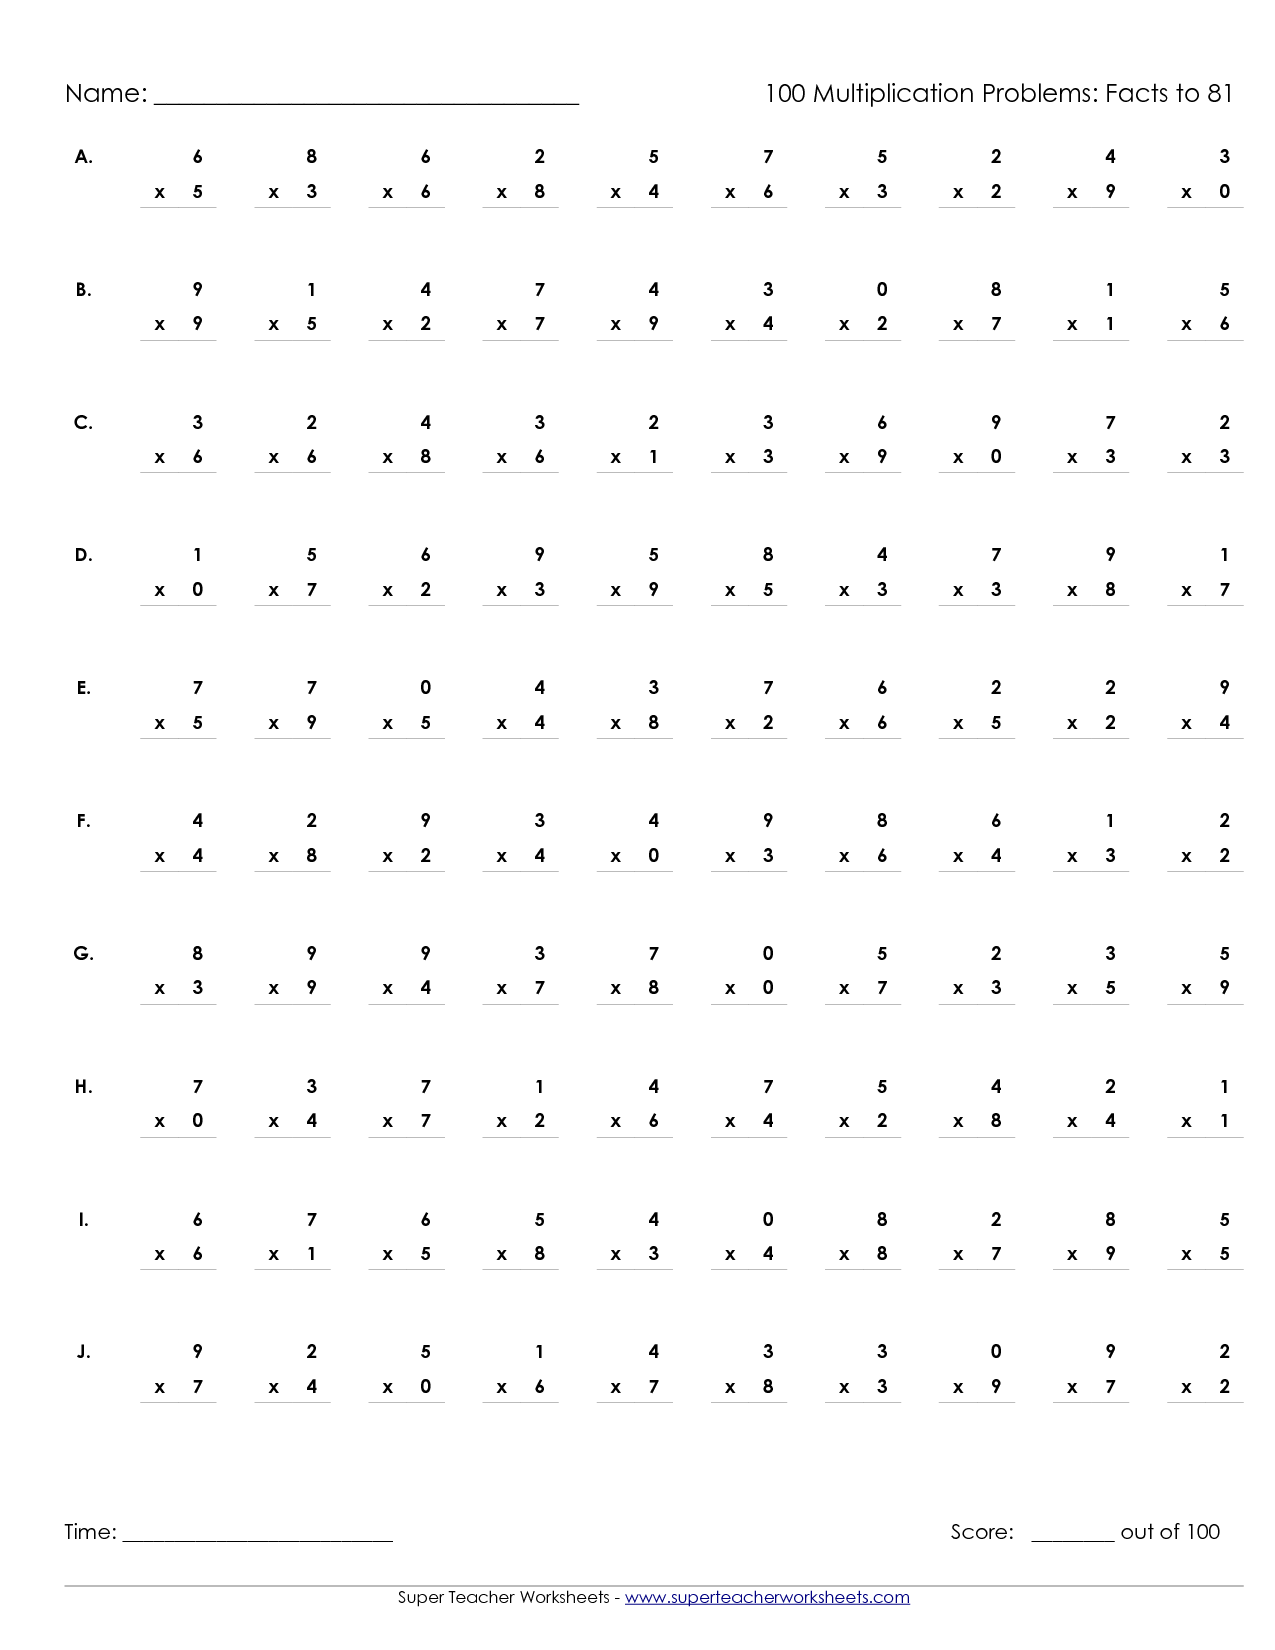 math worksheet : 6 best images of 100 multiplication printable out sheet  : Free Printable Multiplication Facts Worksheets